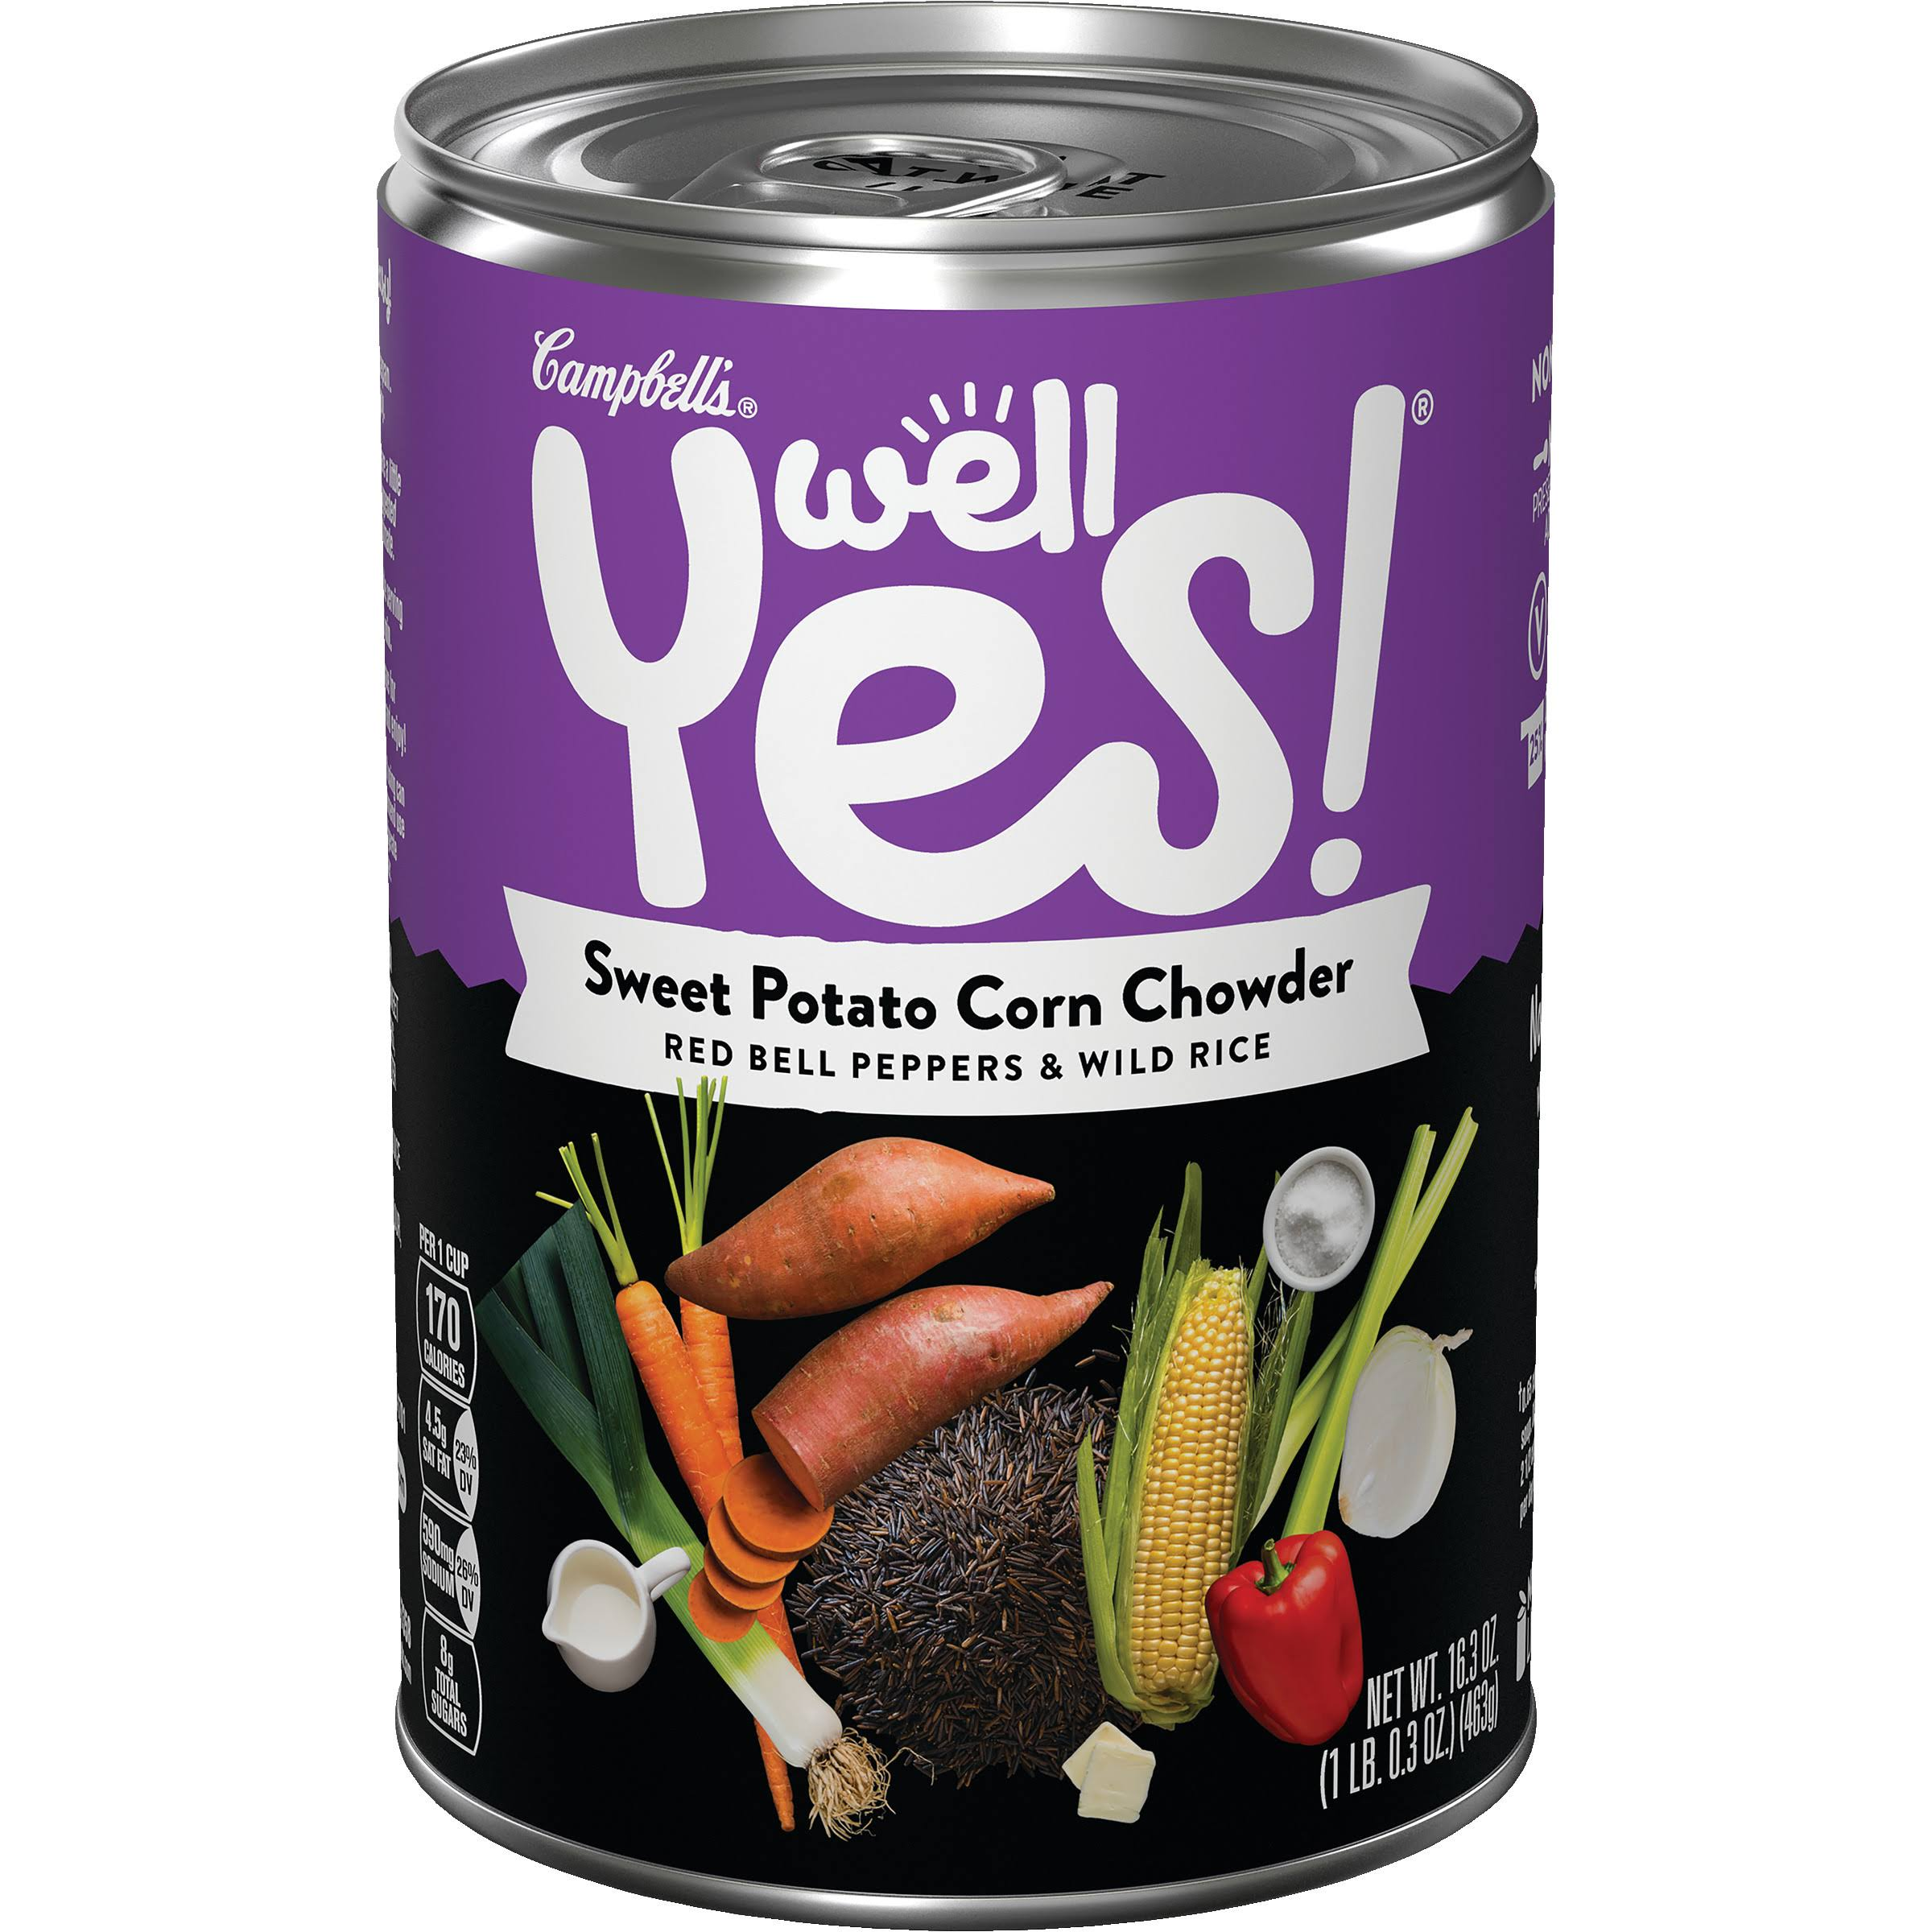 Campbell's Well Yes Sweet Potato Corn Chowder Soup - 16.3oz